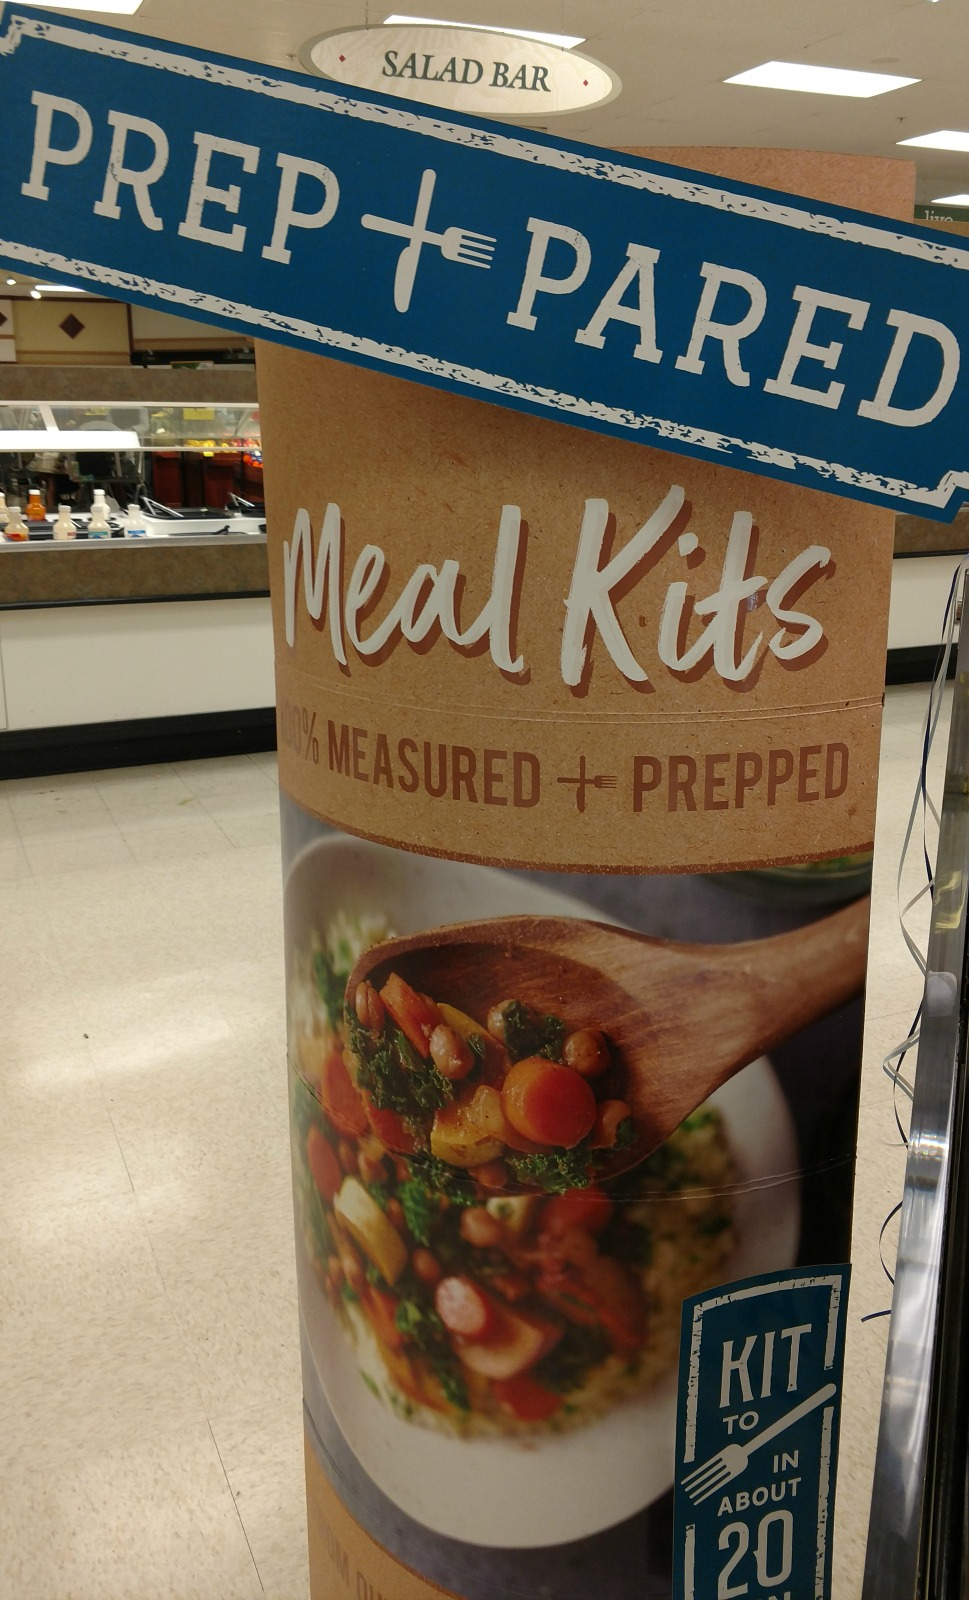 Kroger Newport Ky >> Skip Raiding The Pantry With Kroger's Prep+Pared Meals ...